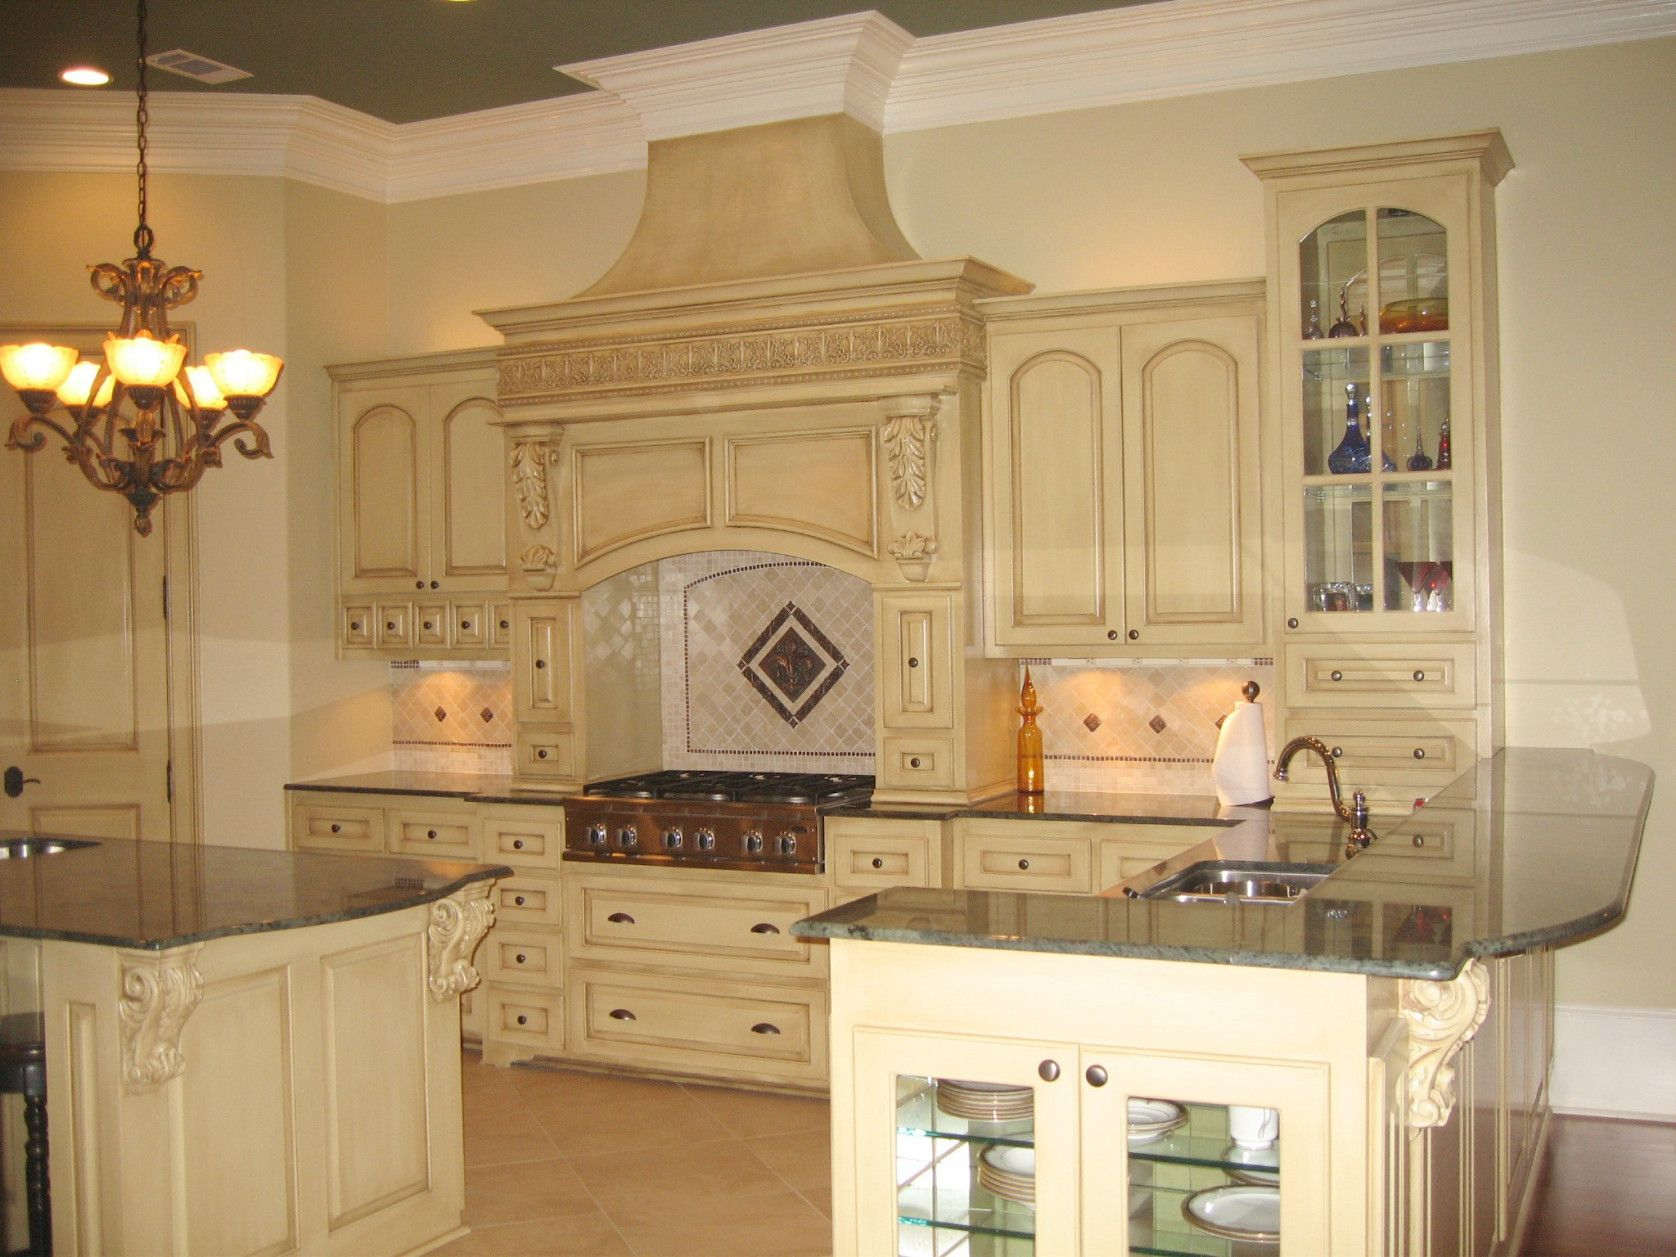 77 Tuscan Style Cabinet Hardware Best Kitchen Cabinet